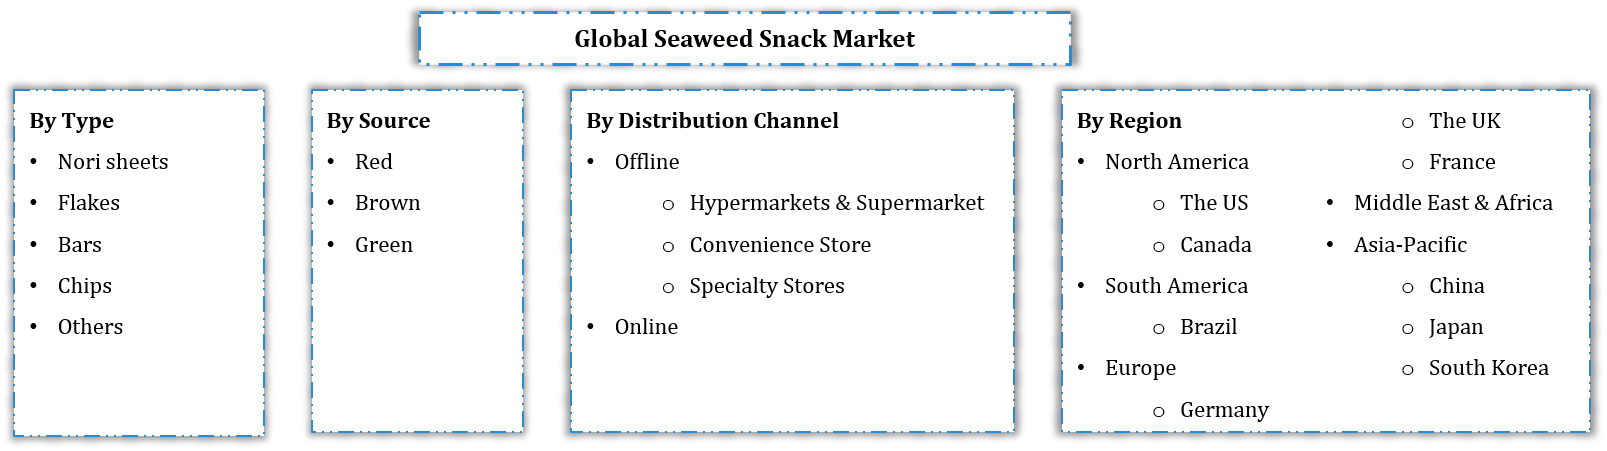 Global Seaweed Snack Market Segmentation